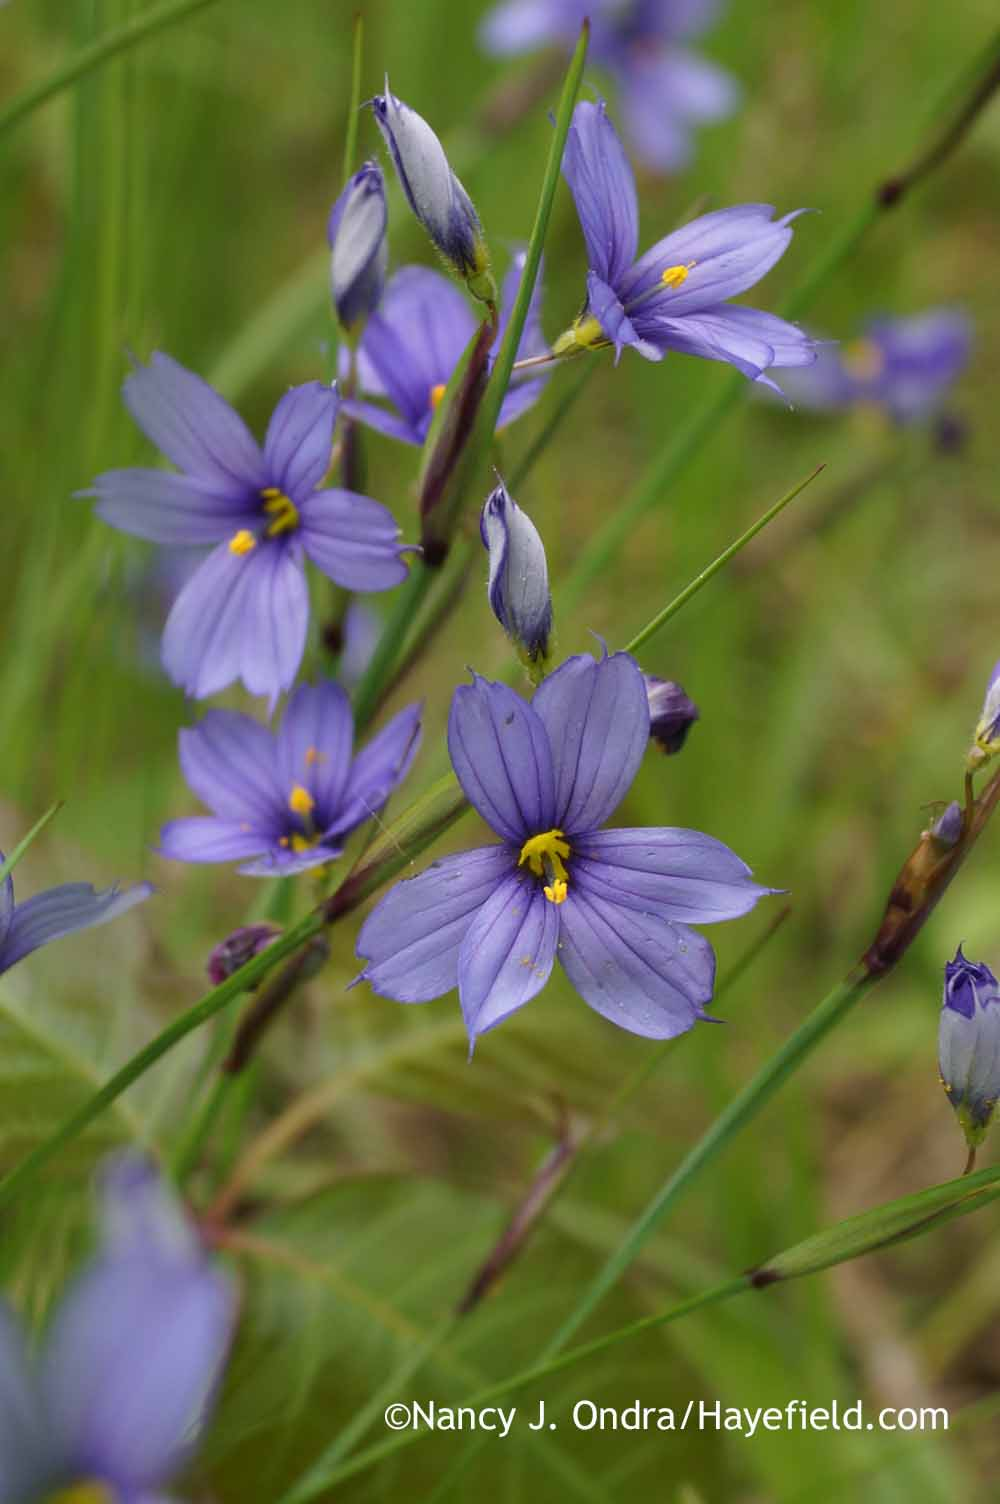 Spring wildflowers hayefield spring gardening spring wildflowers 19 comments narrowleaf blue eyed grass sisyrinchium angustifolium nancy j ondra at hayefield mightylinksfo Image collections